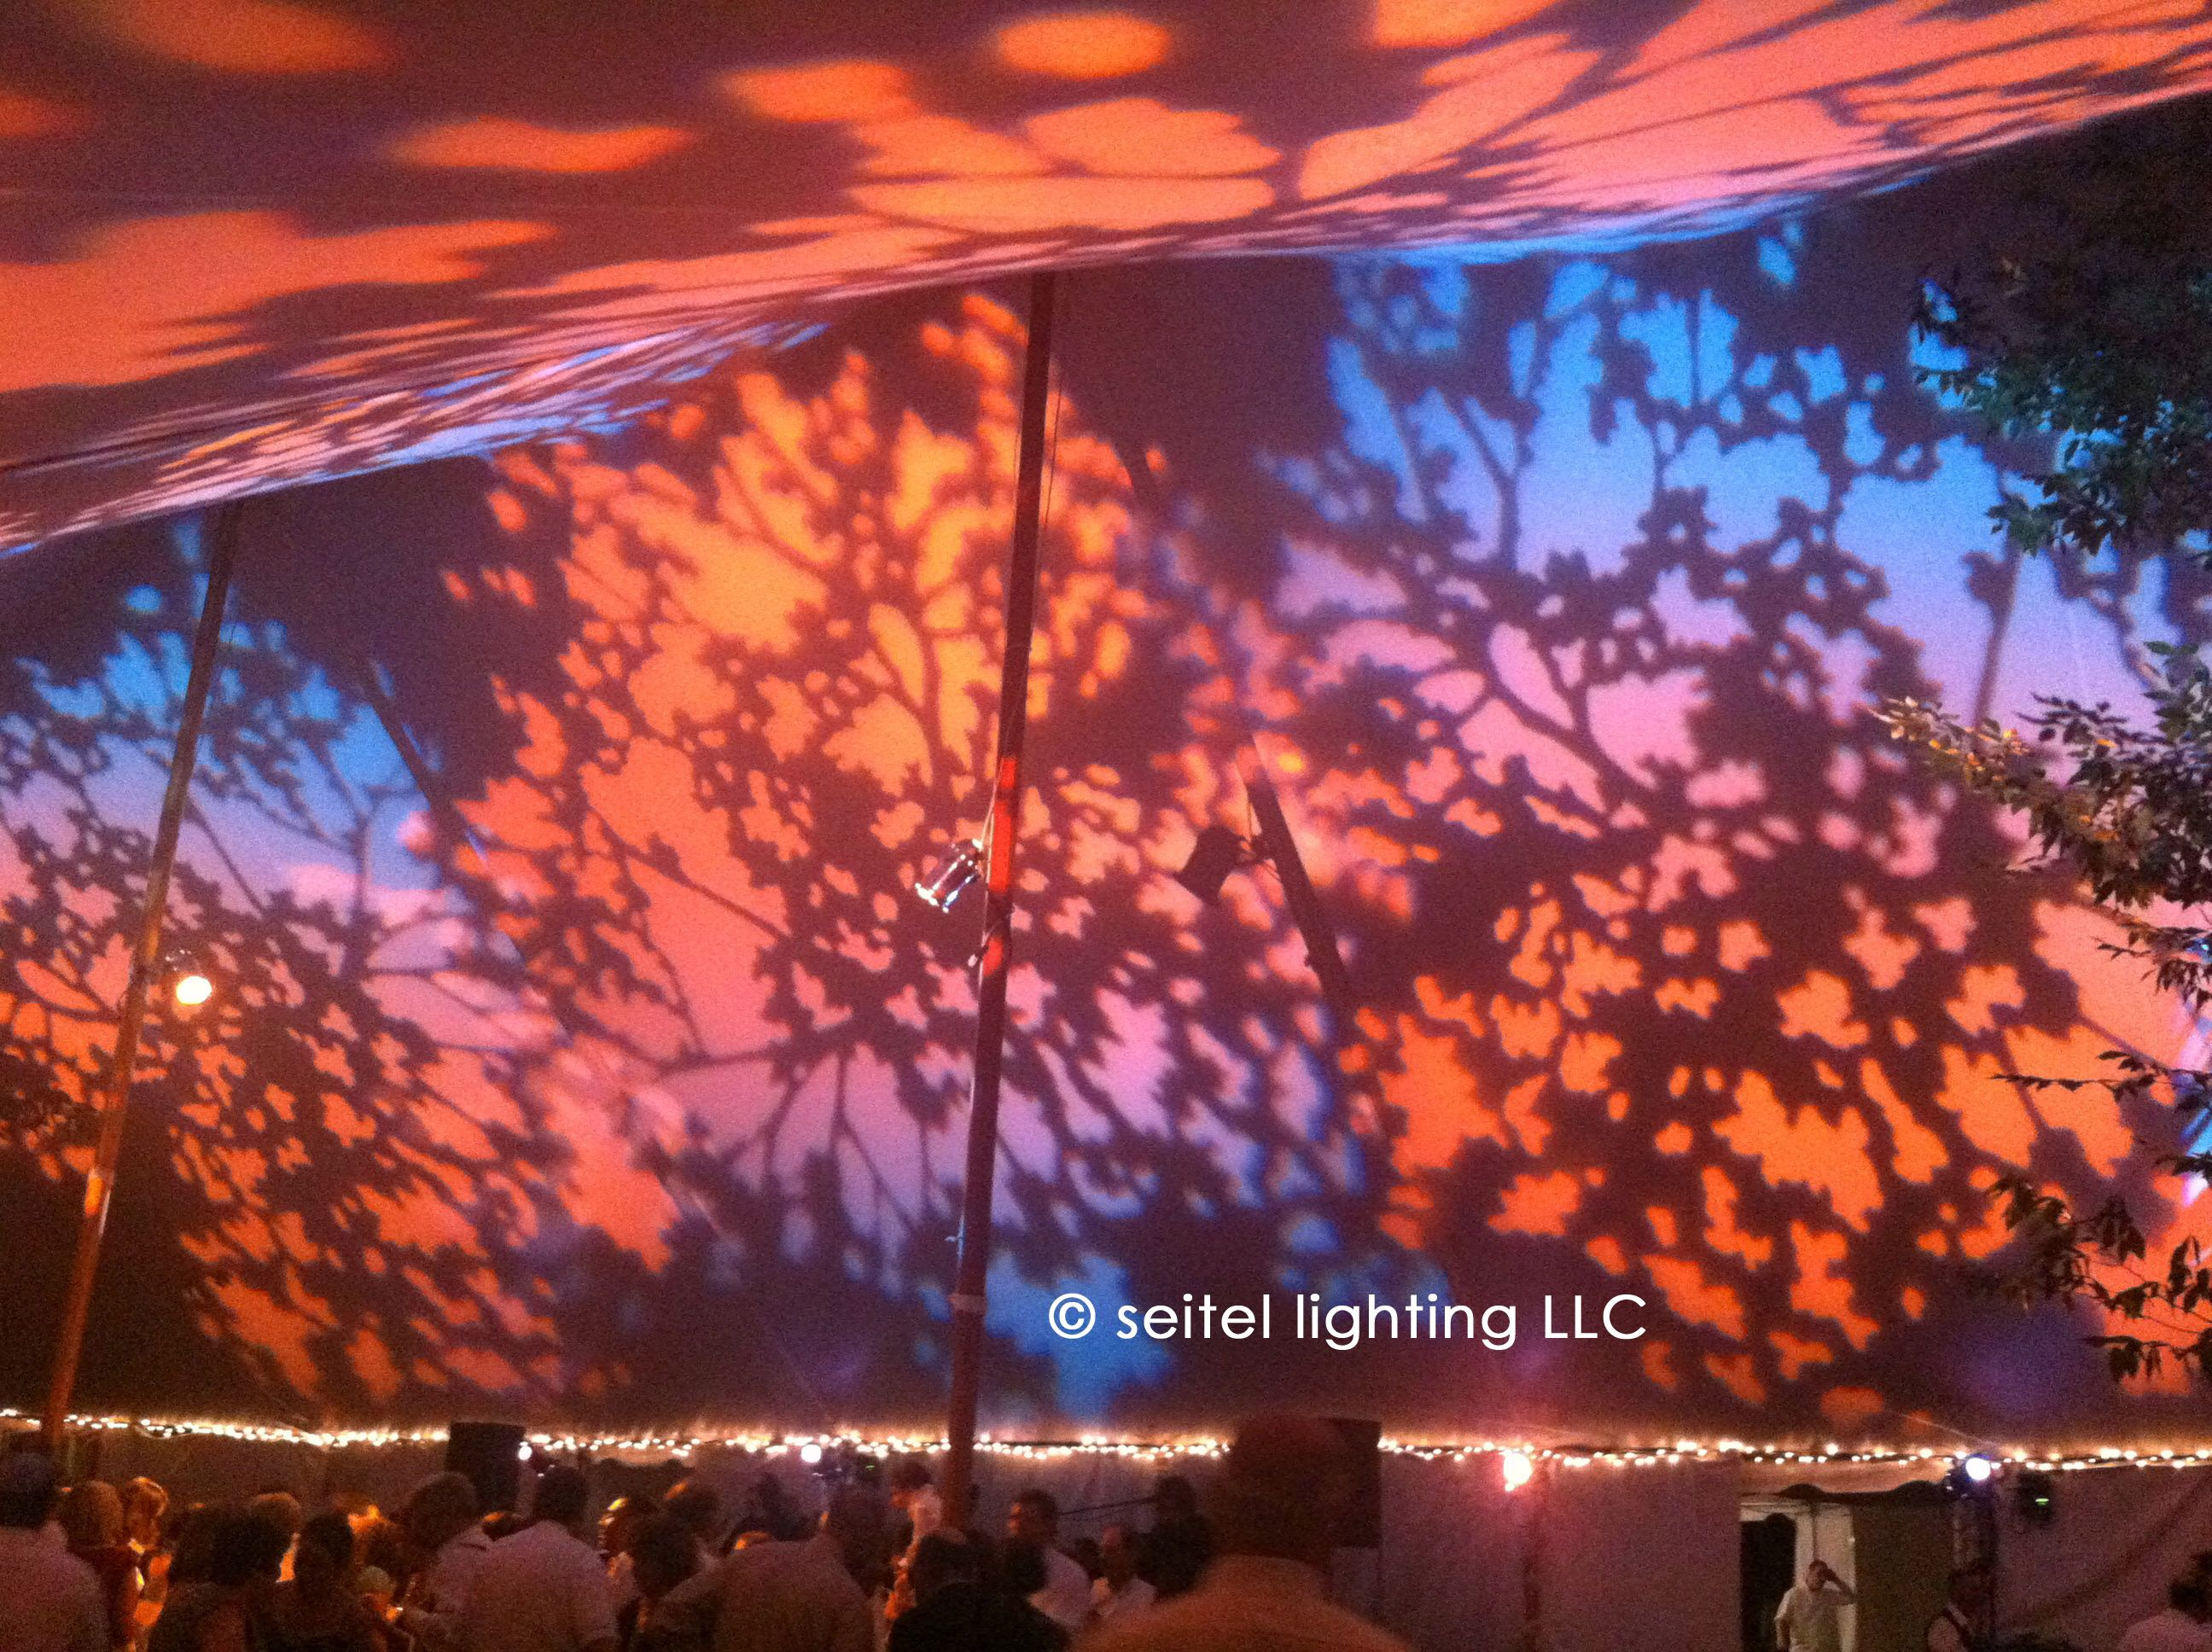 newport lighting concepts and design. amber, pink, lavender, and blue foliage patterns projected with theatrical lekos create a newport lighting concepts design